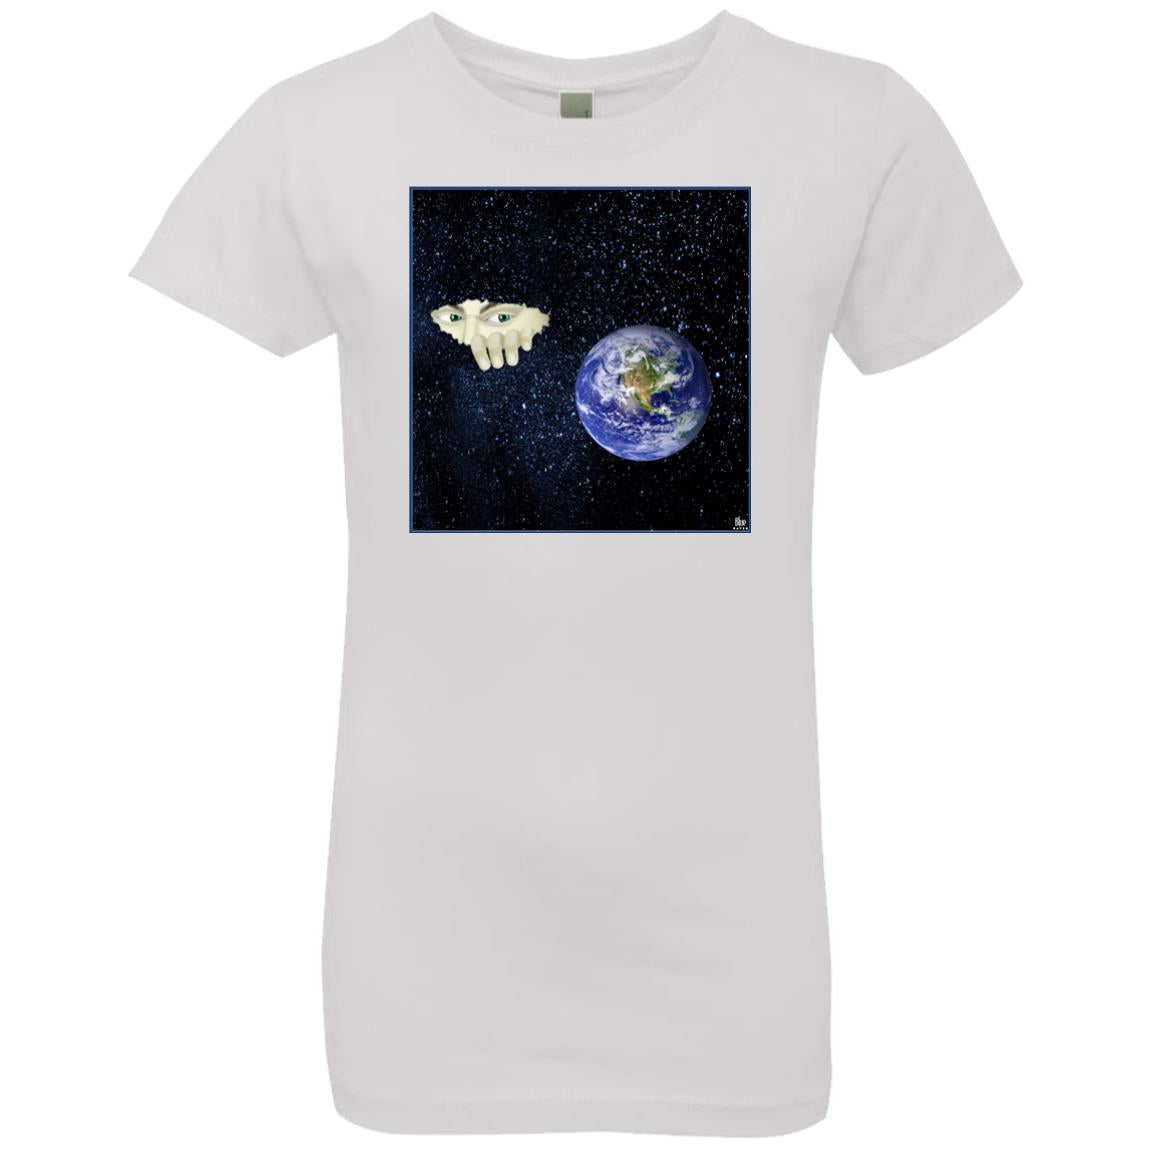 SOMEWHERE OUT THERE - Girl's Premium Cotton T-Shirt